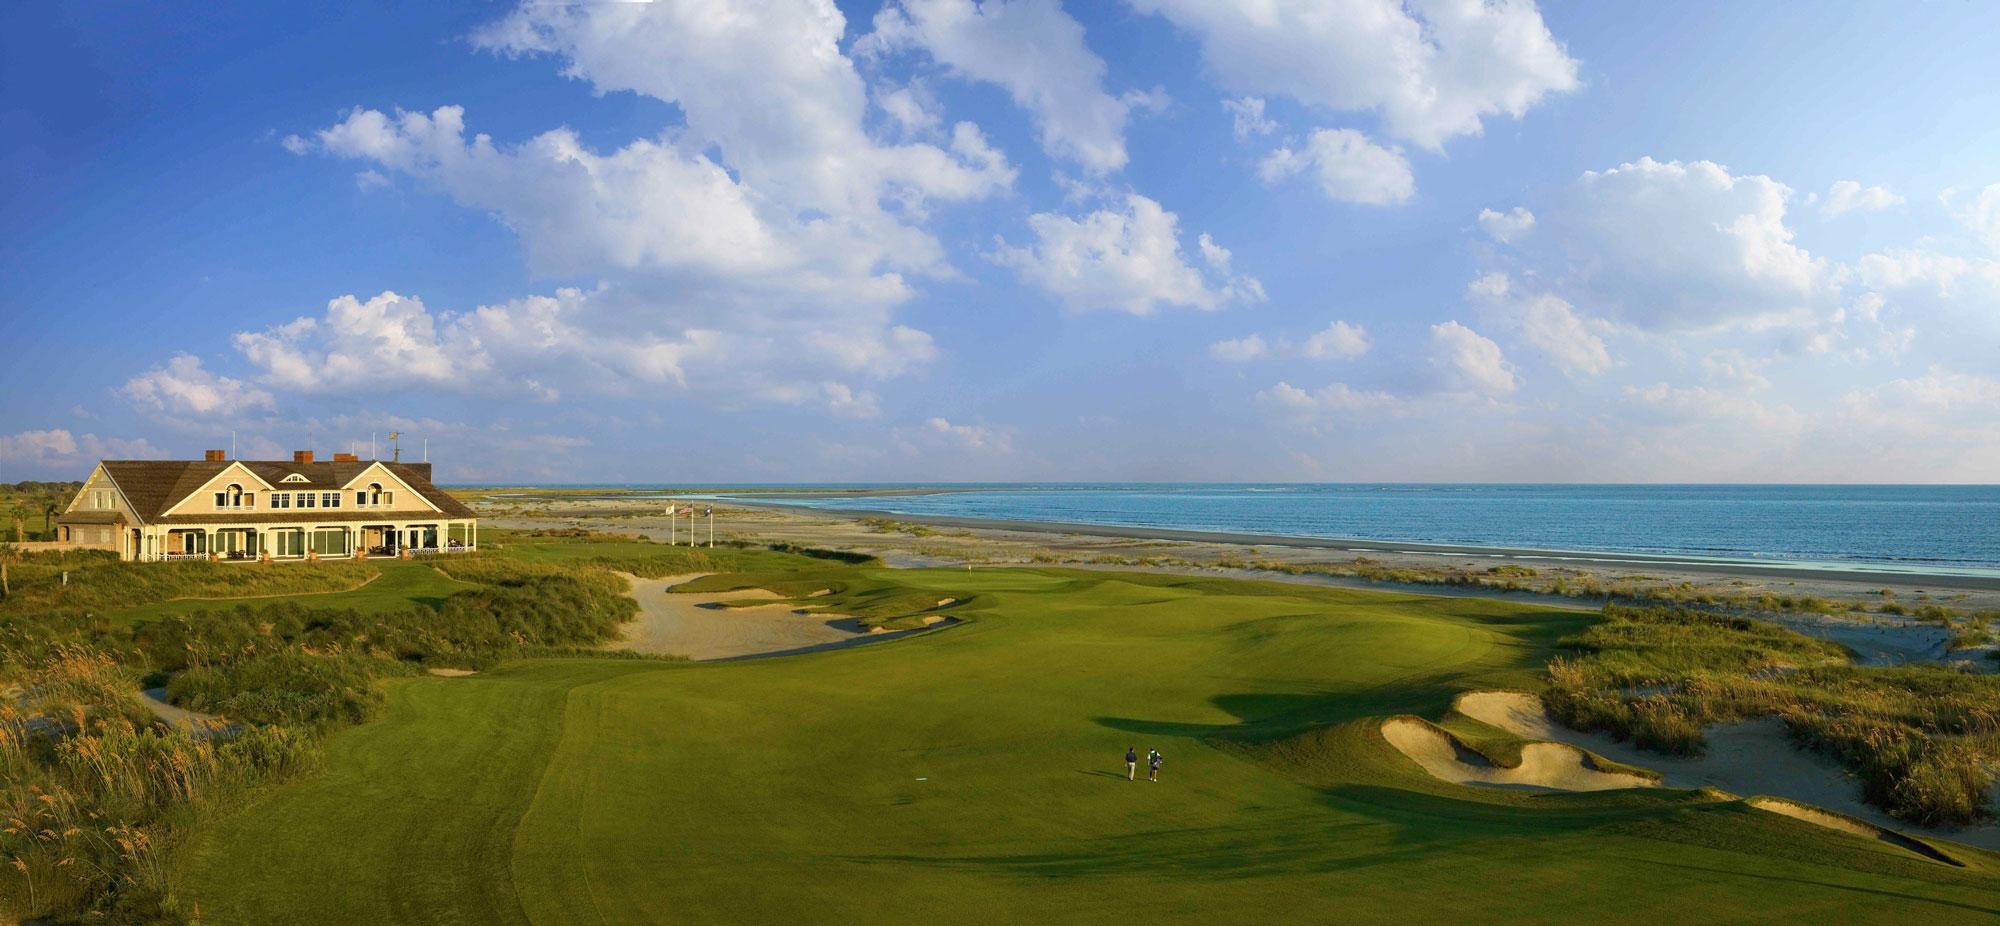 View Kiawah Island Golf Resort's beautiful golf course in dramatic South Carolina.